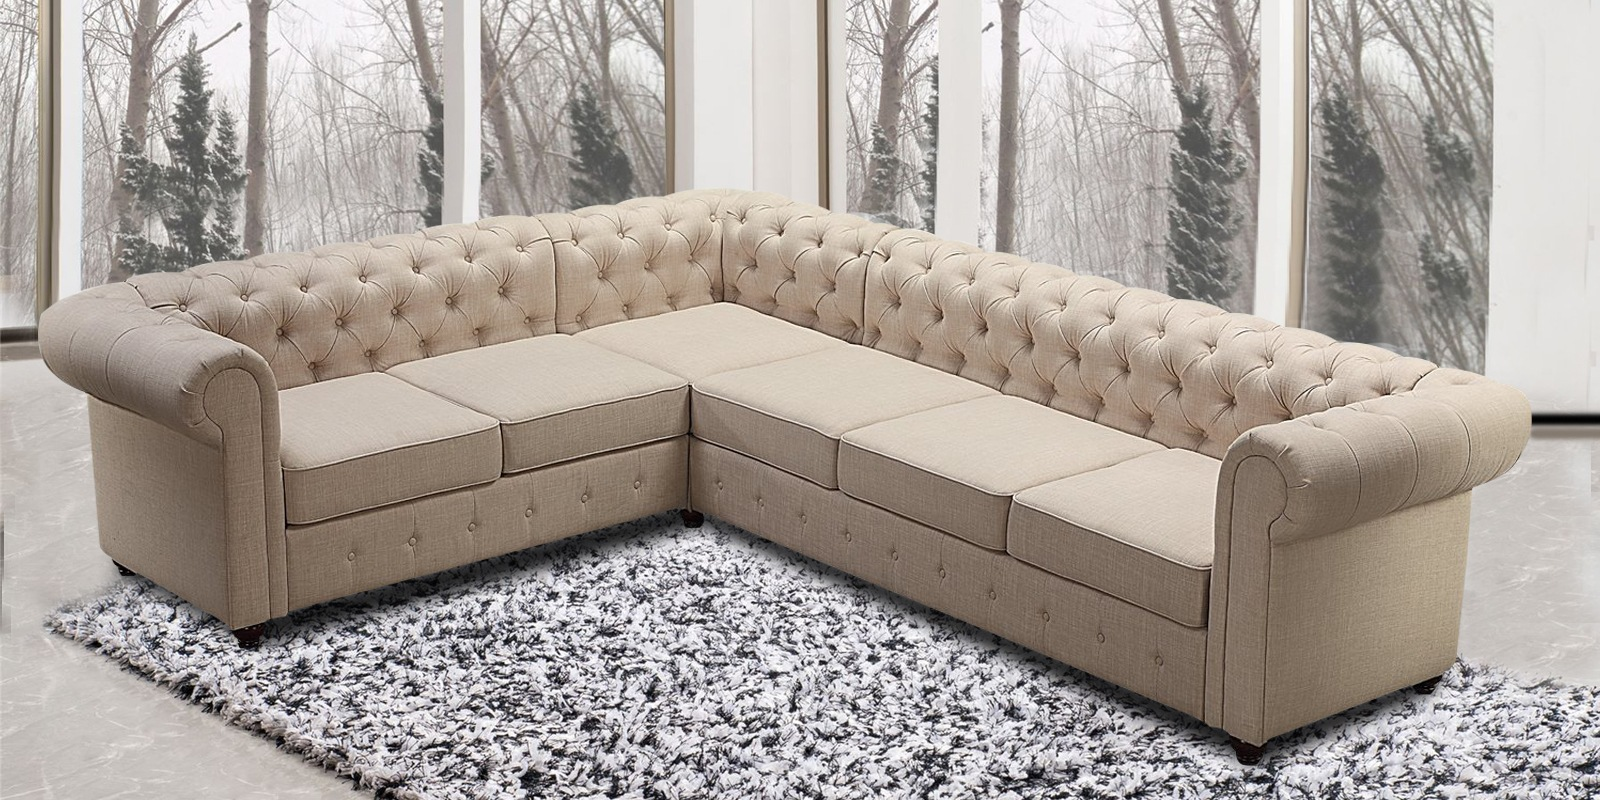 Royal Corner Sectional Sofa With Tufted